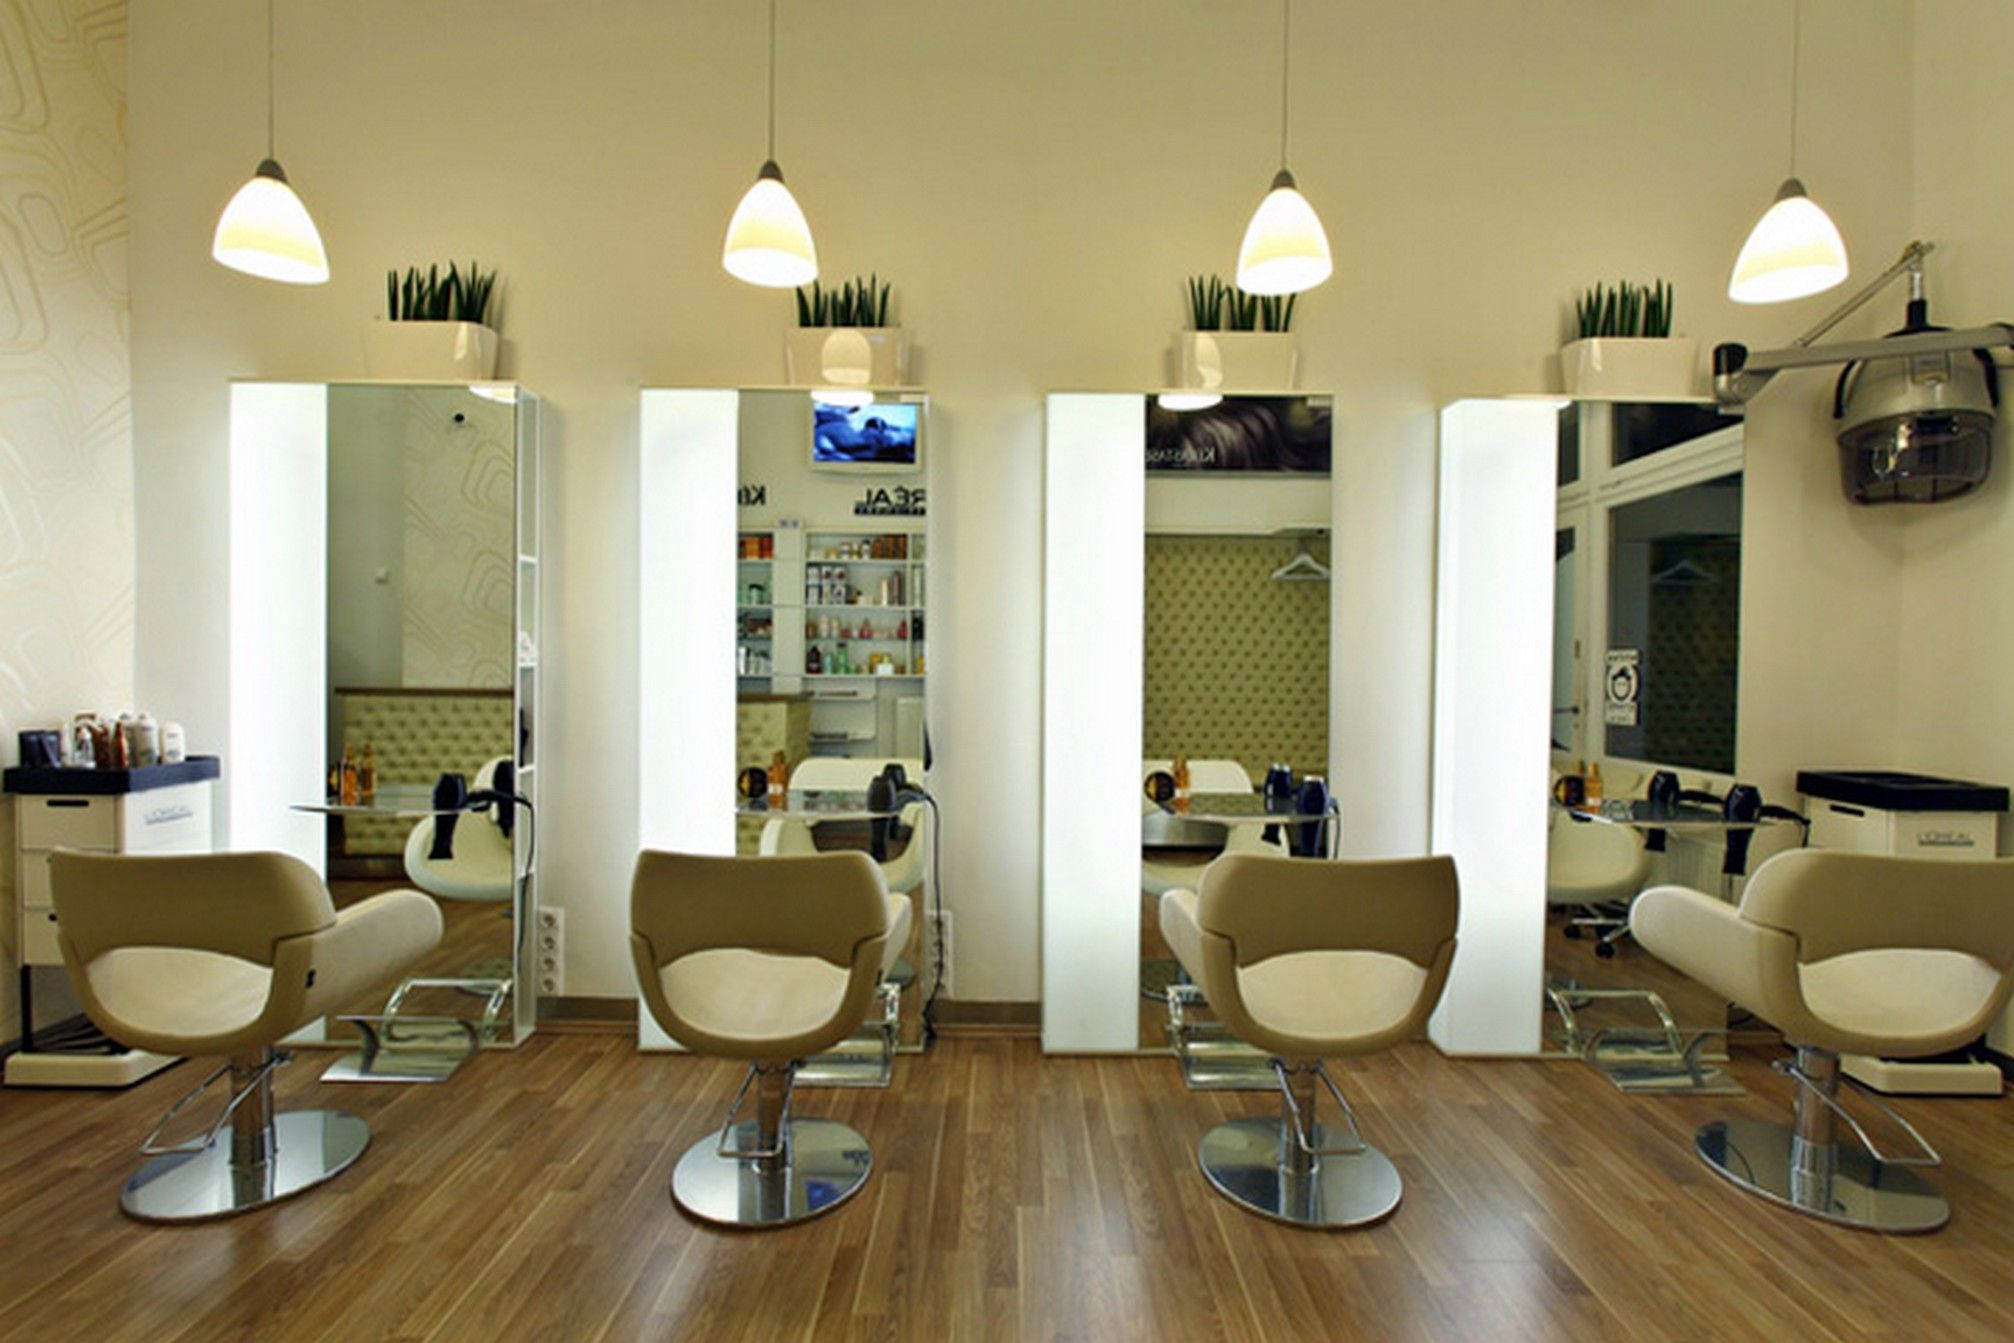 Salon Ideas Design nail salon decorating ideas Decorating Fascinating Ideas For Hair Salon Design Layout With Salon Goals Pinterest Salons Salon Design And Salon Mirrors